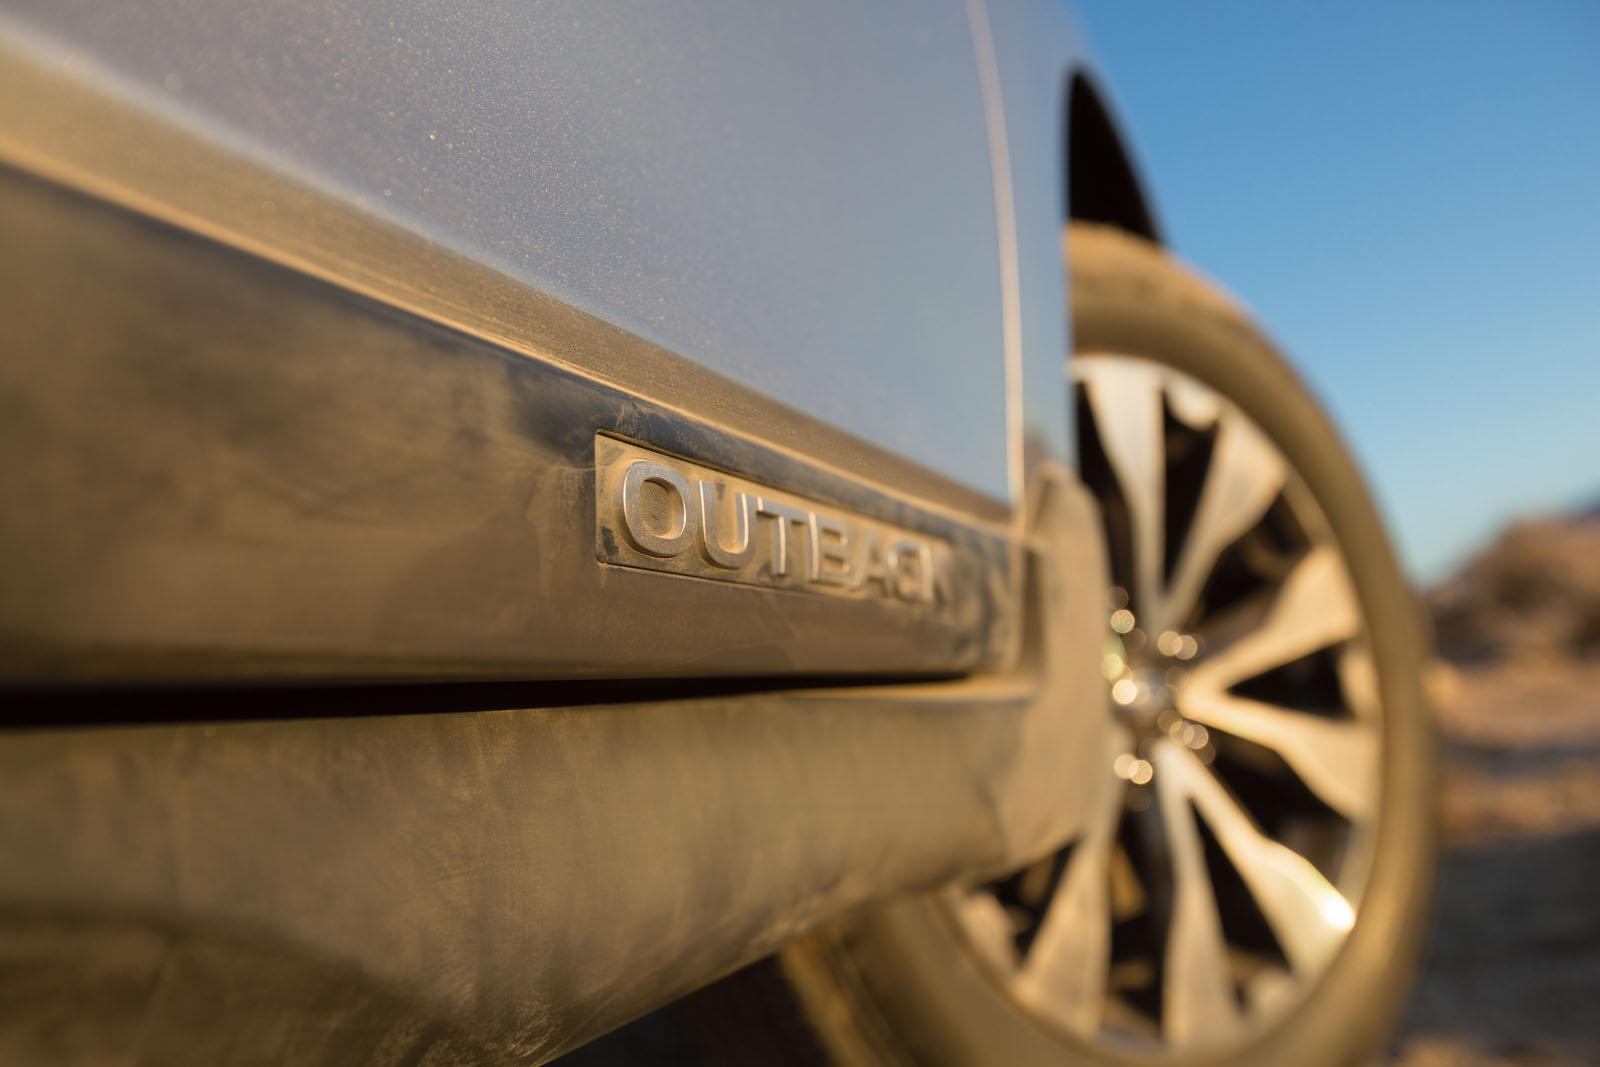 and details 2015 subaru outback from story 2015 subaru outback